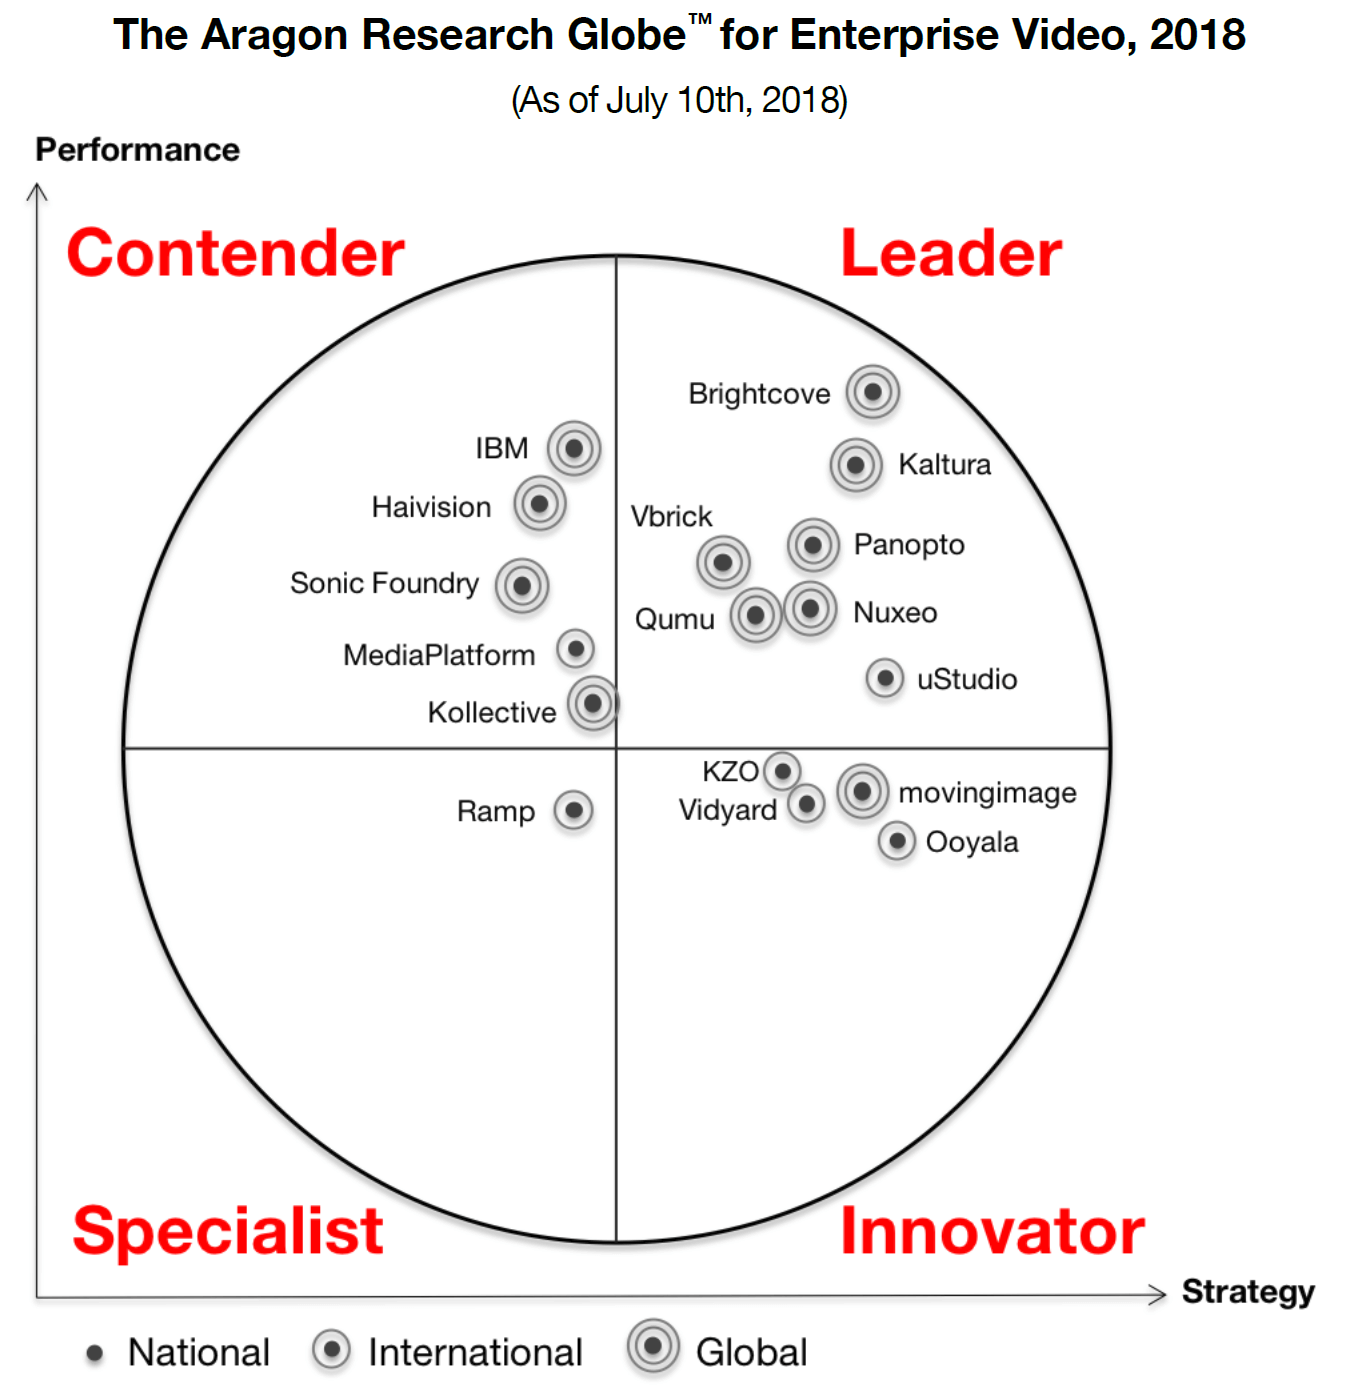 2018 Aragon Research Globe for Enterprise Video